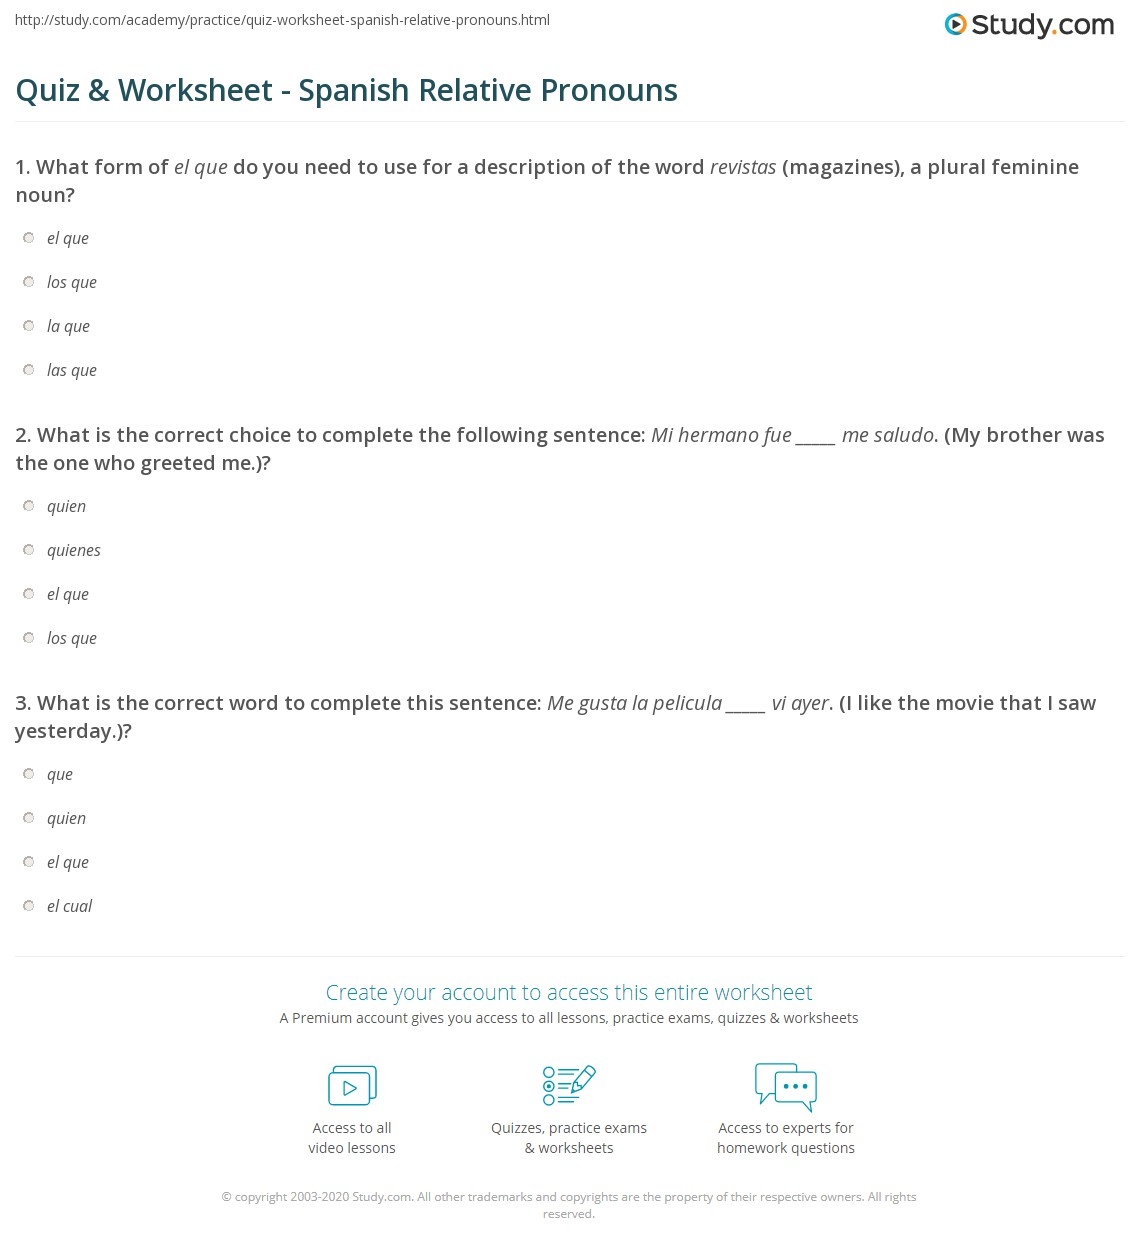 Quiz worksheet spanish relative pronouns study what is the correct choice to complete the following sentence mi hermano fue me saludo my brother was the one who greeted me m4hsunfo